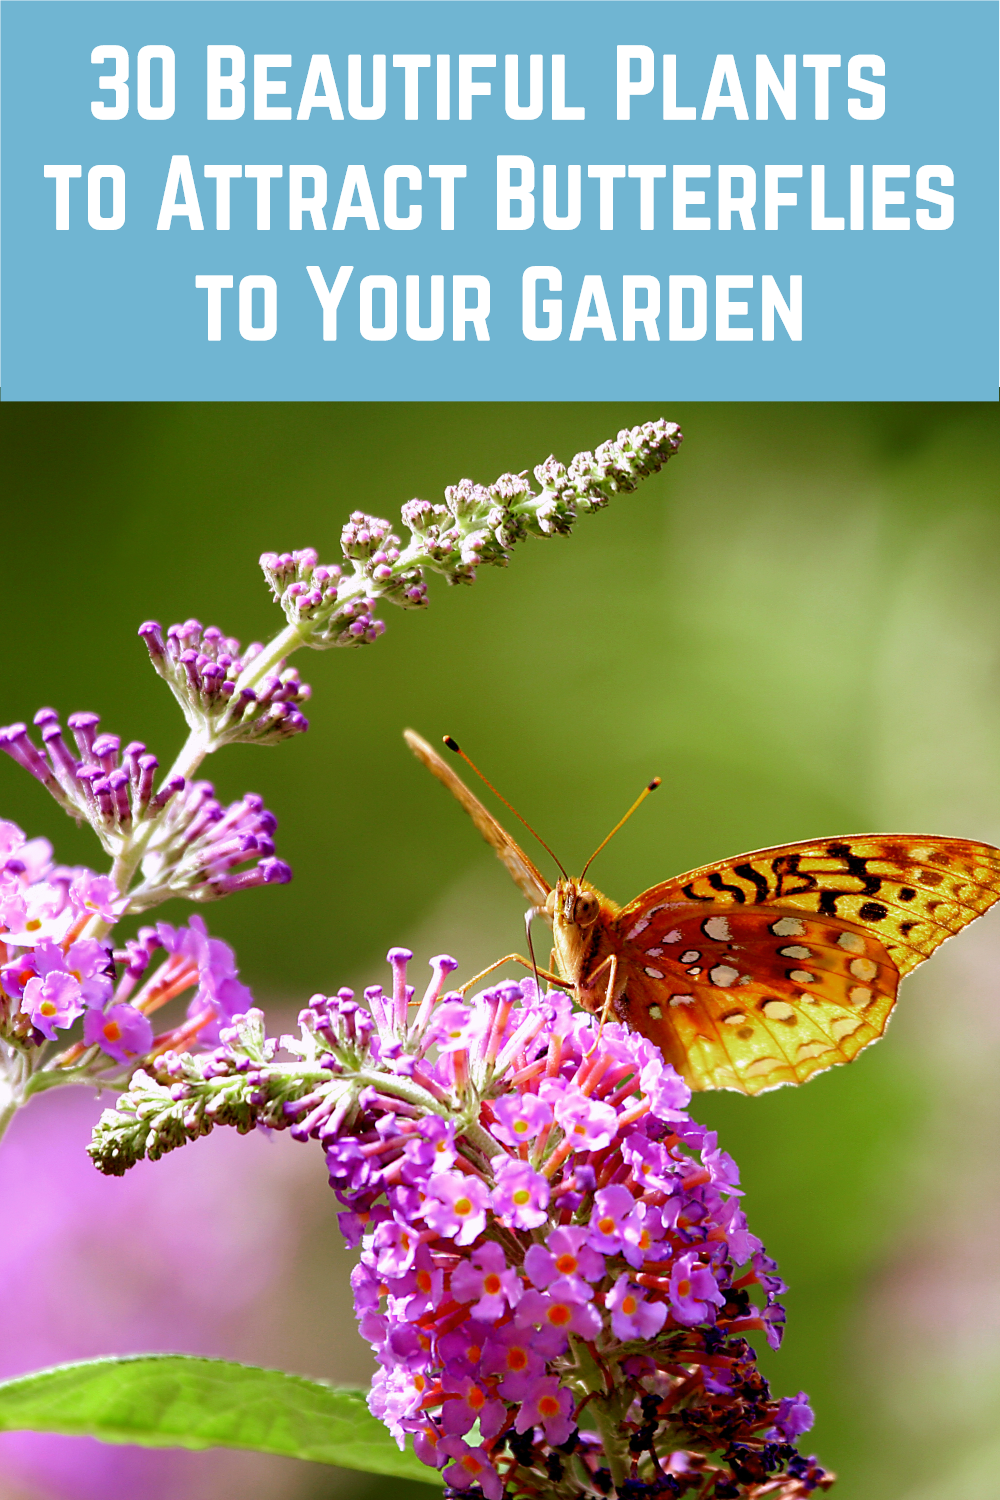 30 Beautiful Plants To Attract Butterflies To Your Garden In 2020 Plants That Attract Butterflies Plants Attract Butterflies